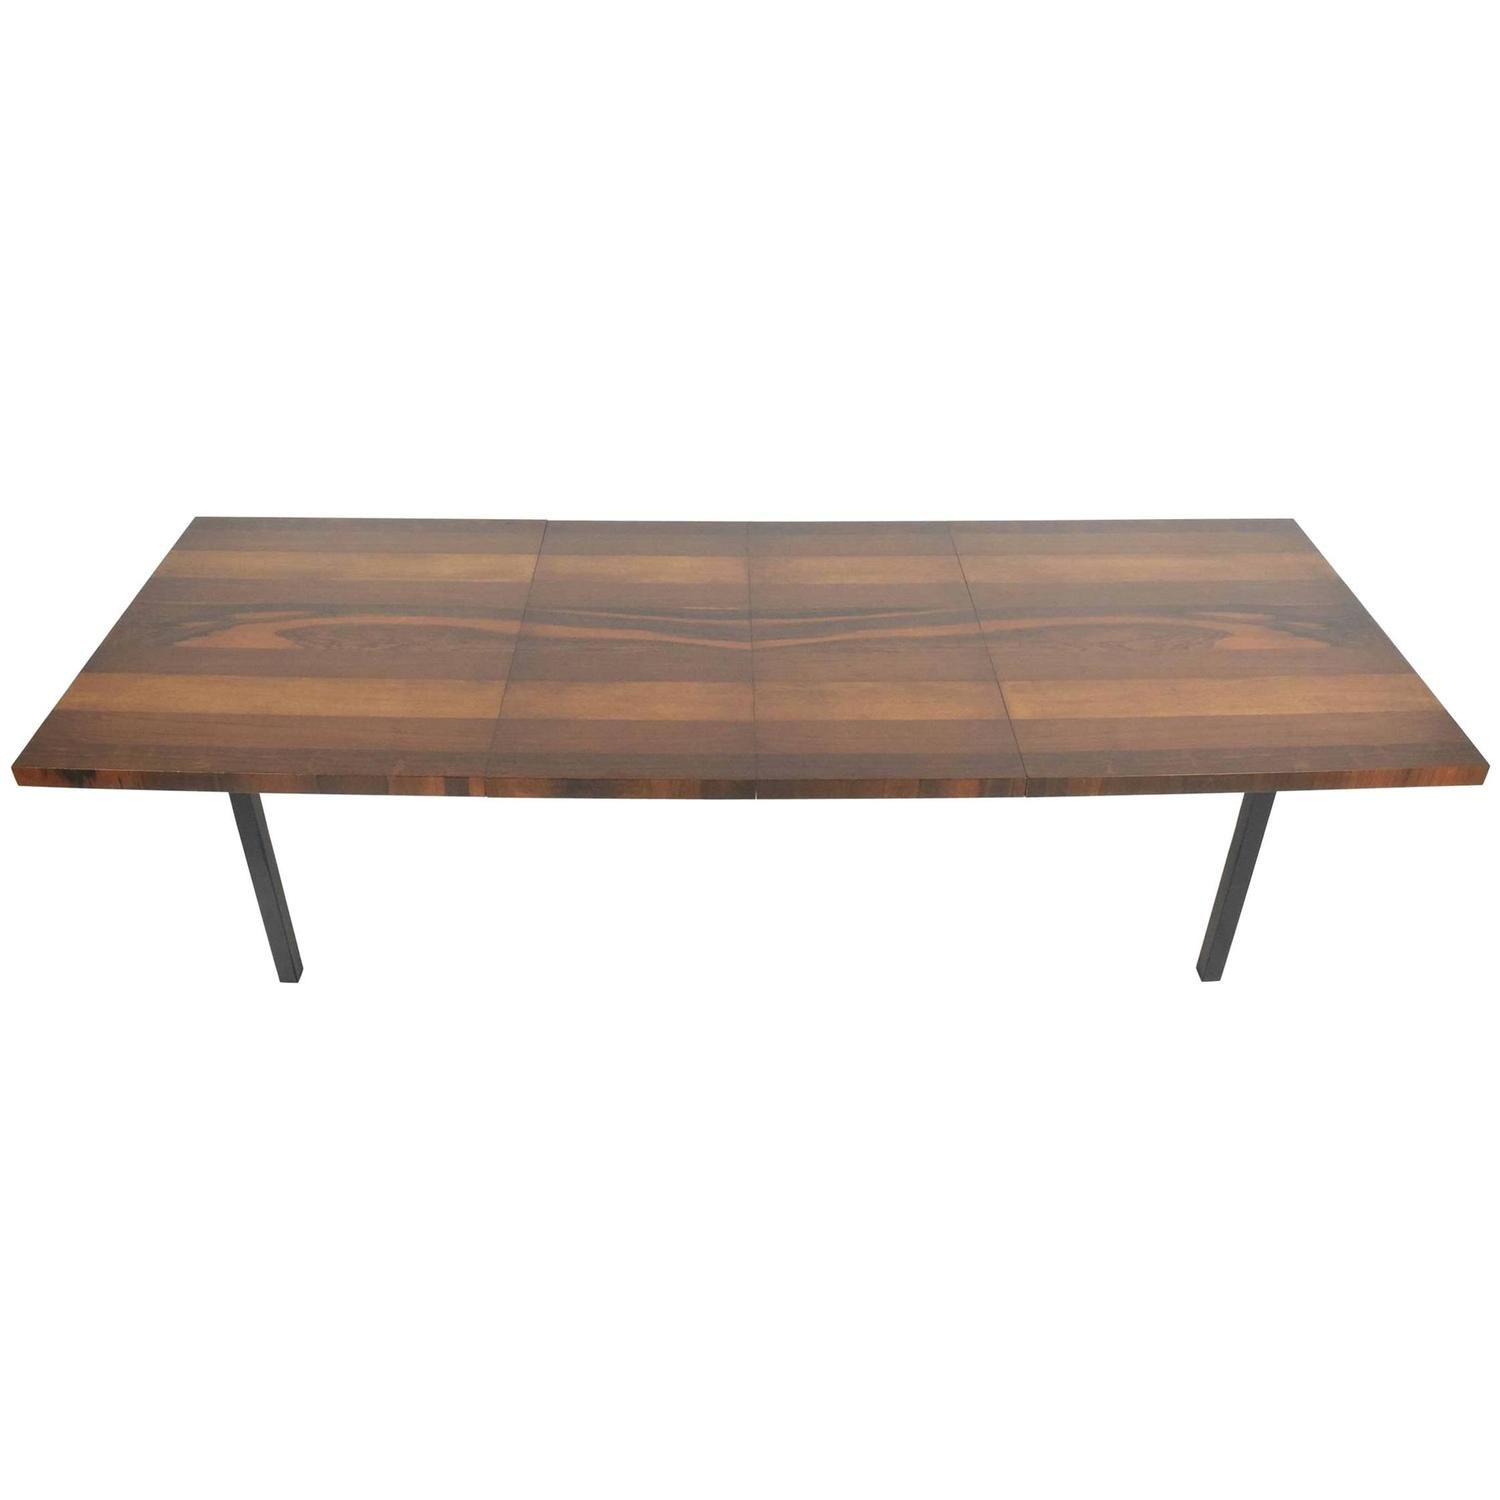 Milo Baughman Multiwood Striped Dining Table Table Dining Table